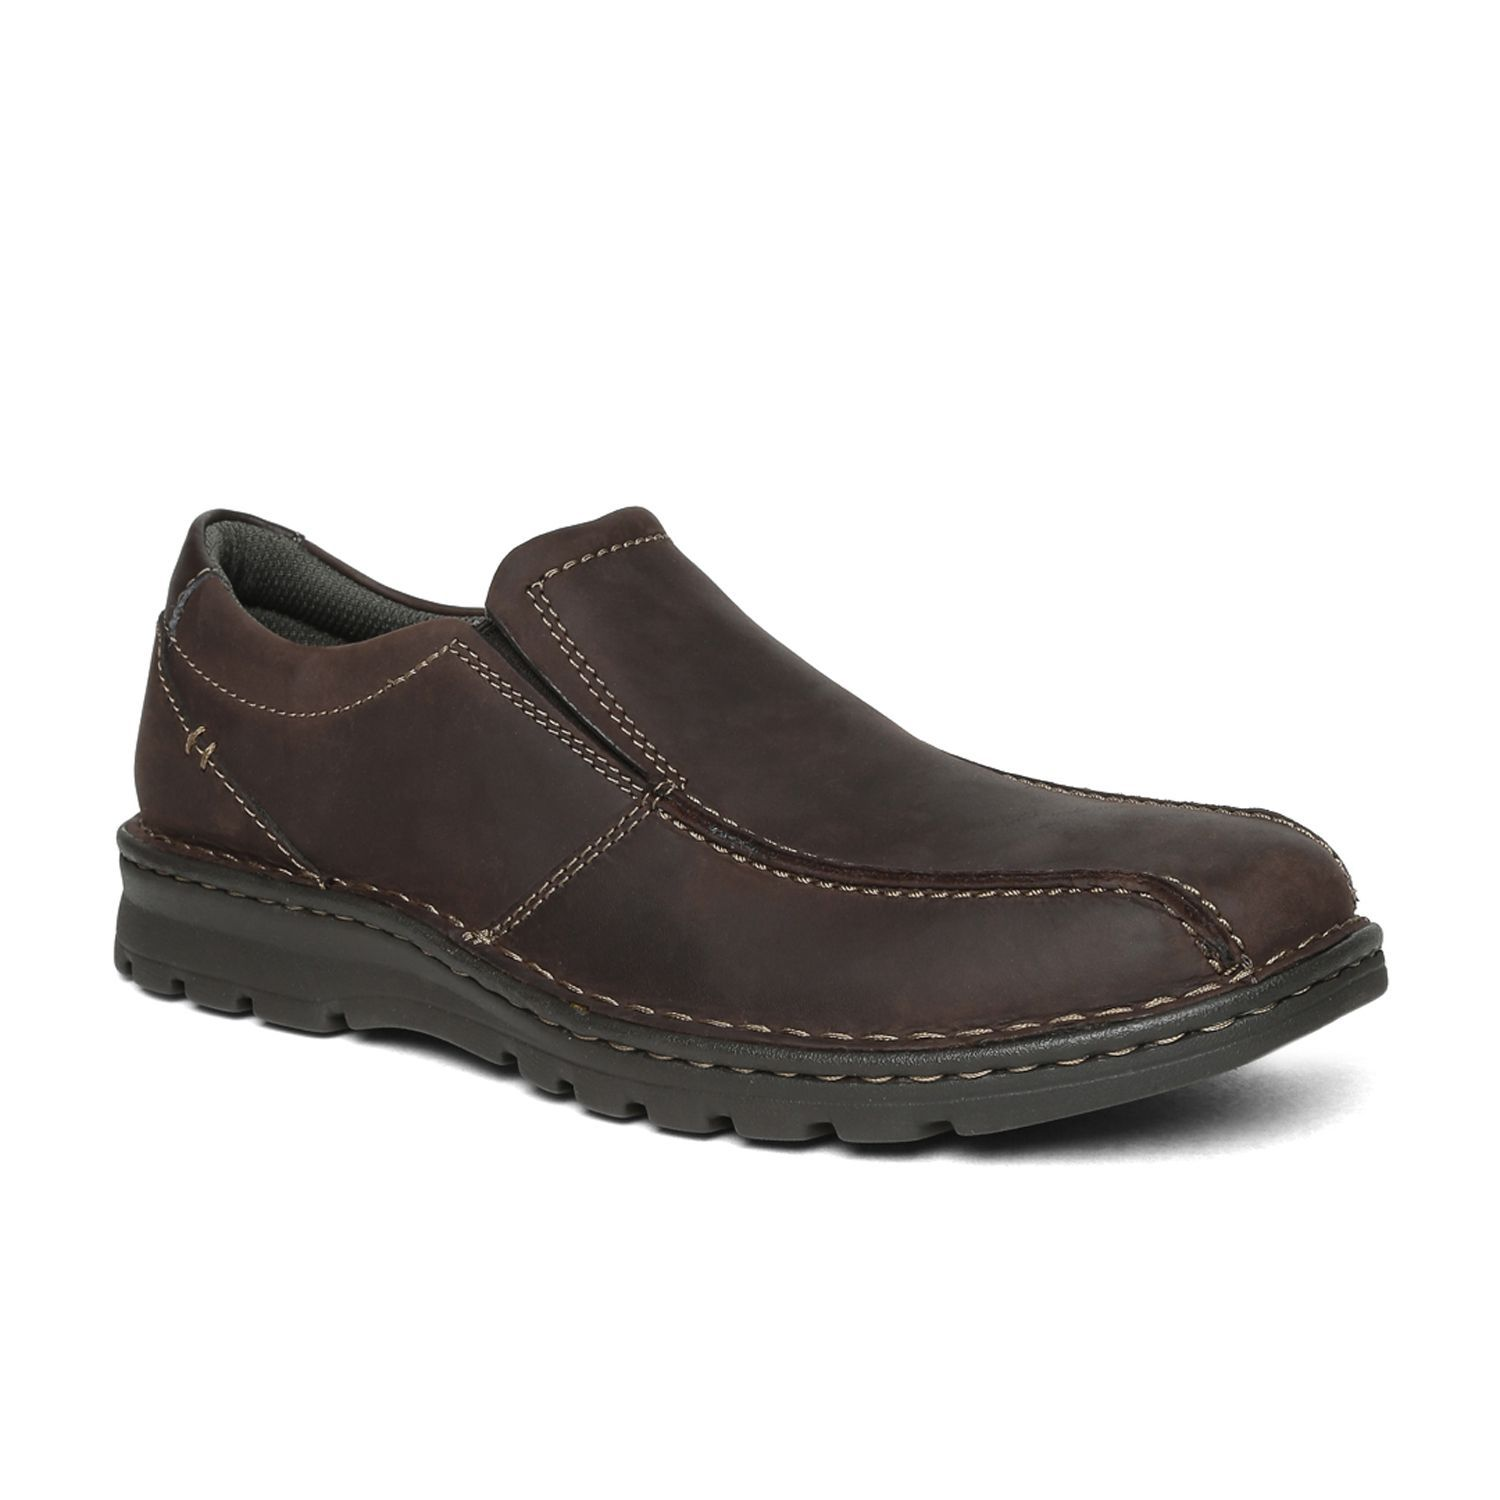 Casual Buy Shoes Clarks Brown Lifestyle wyqa0aHS